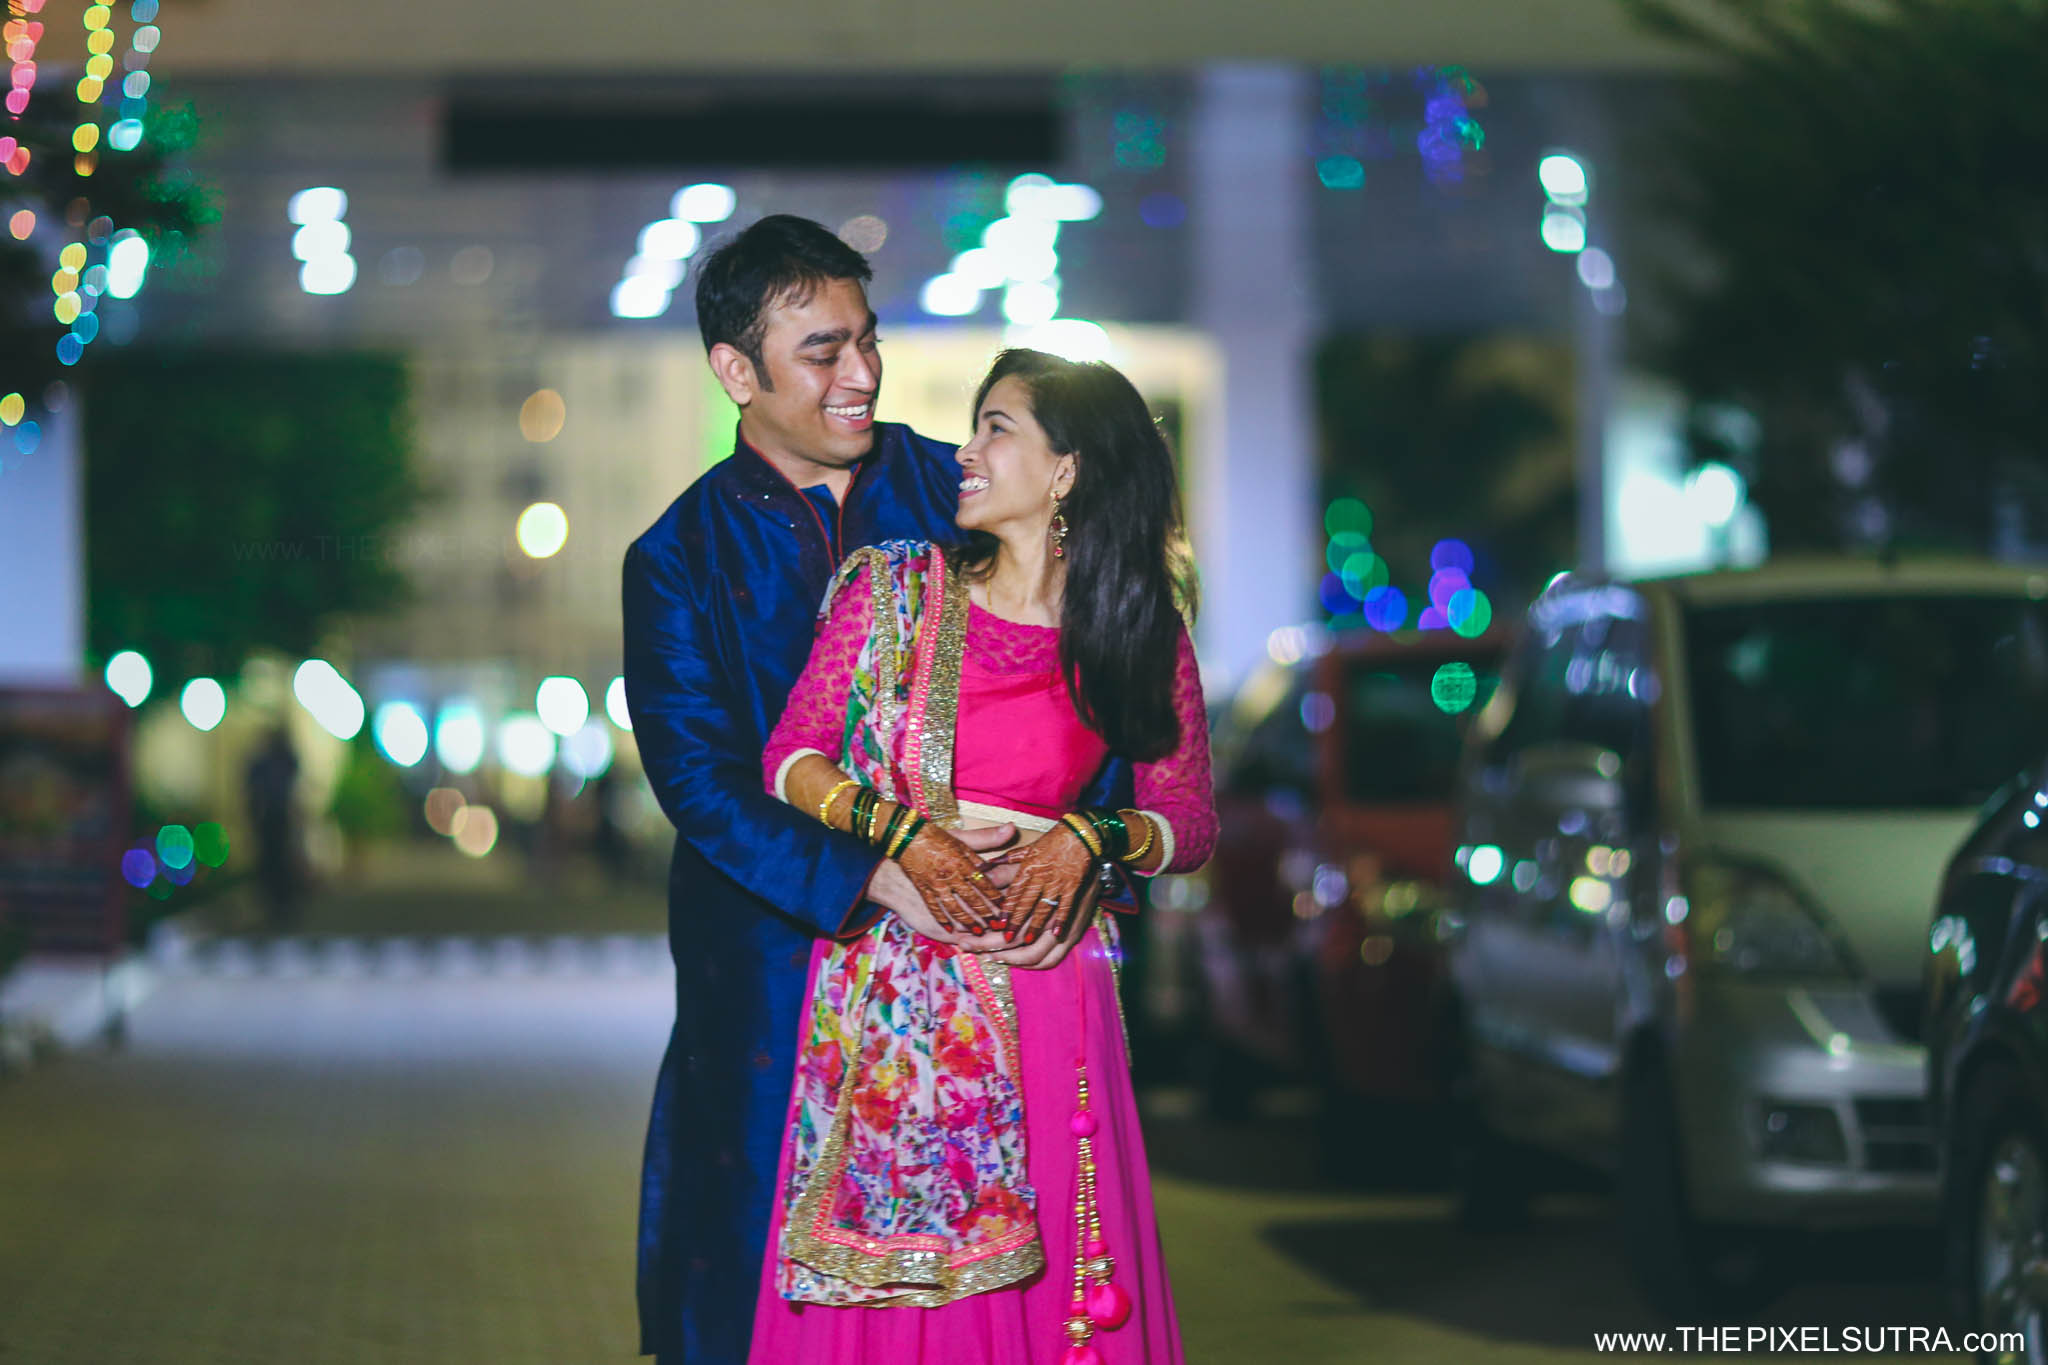 The Pixel Sutra Nachiket x Priyanka Candid Wedding photographer Mumbai Best  (3).jpg